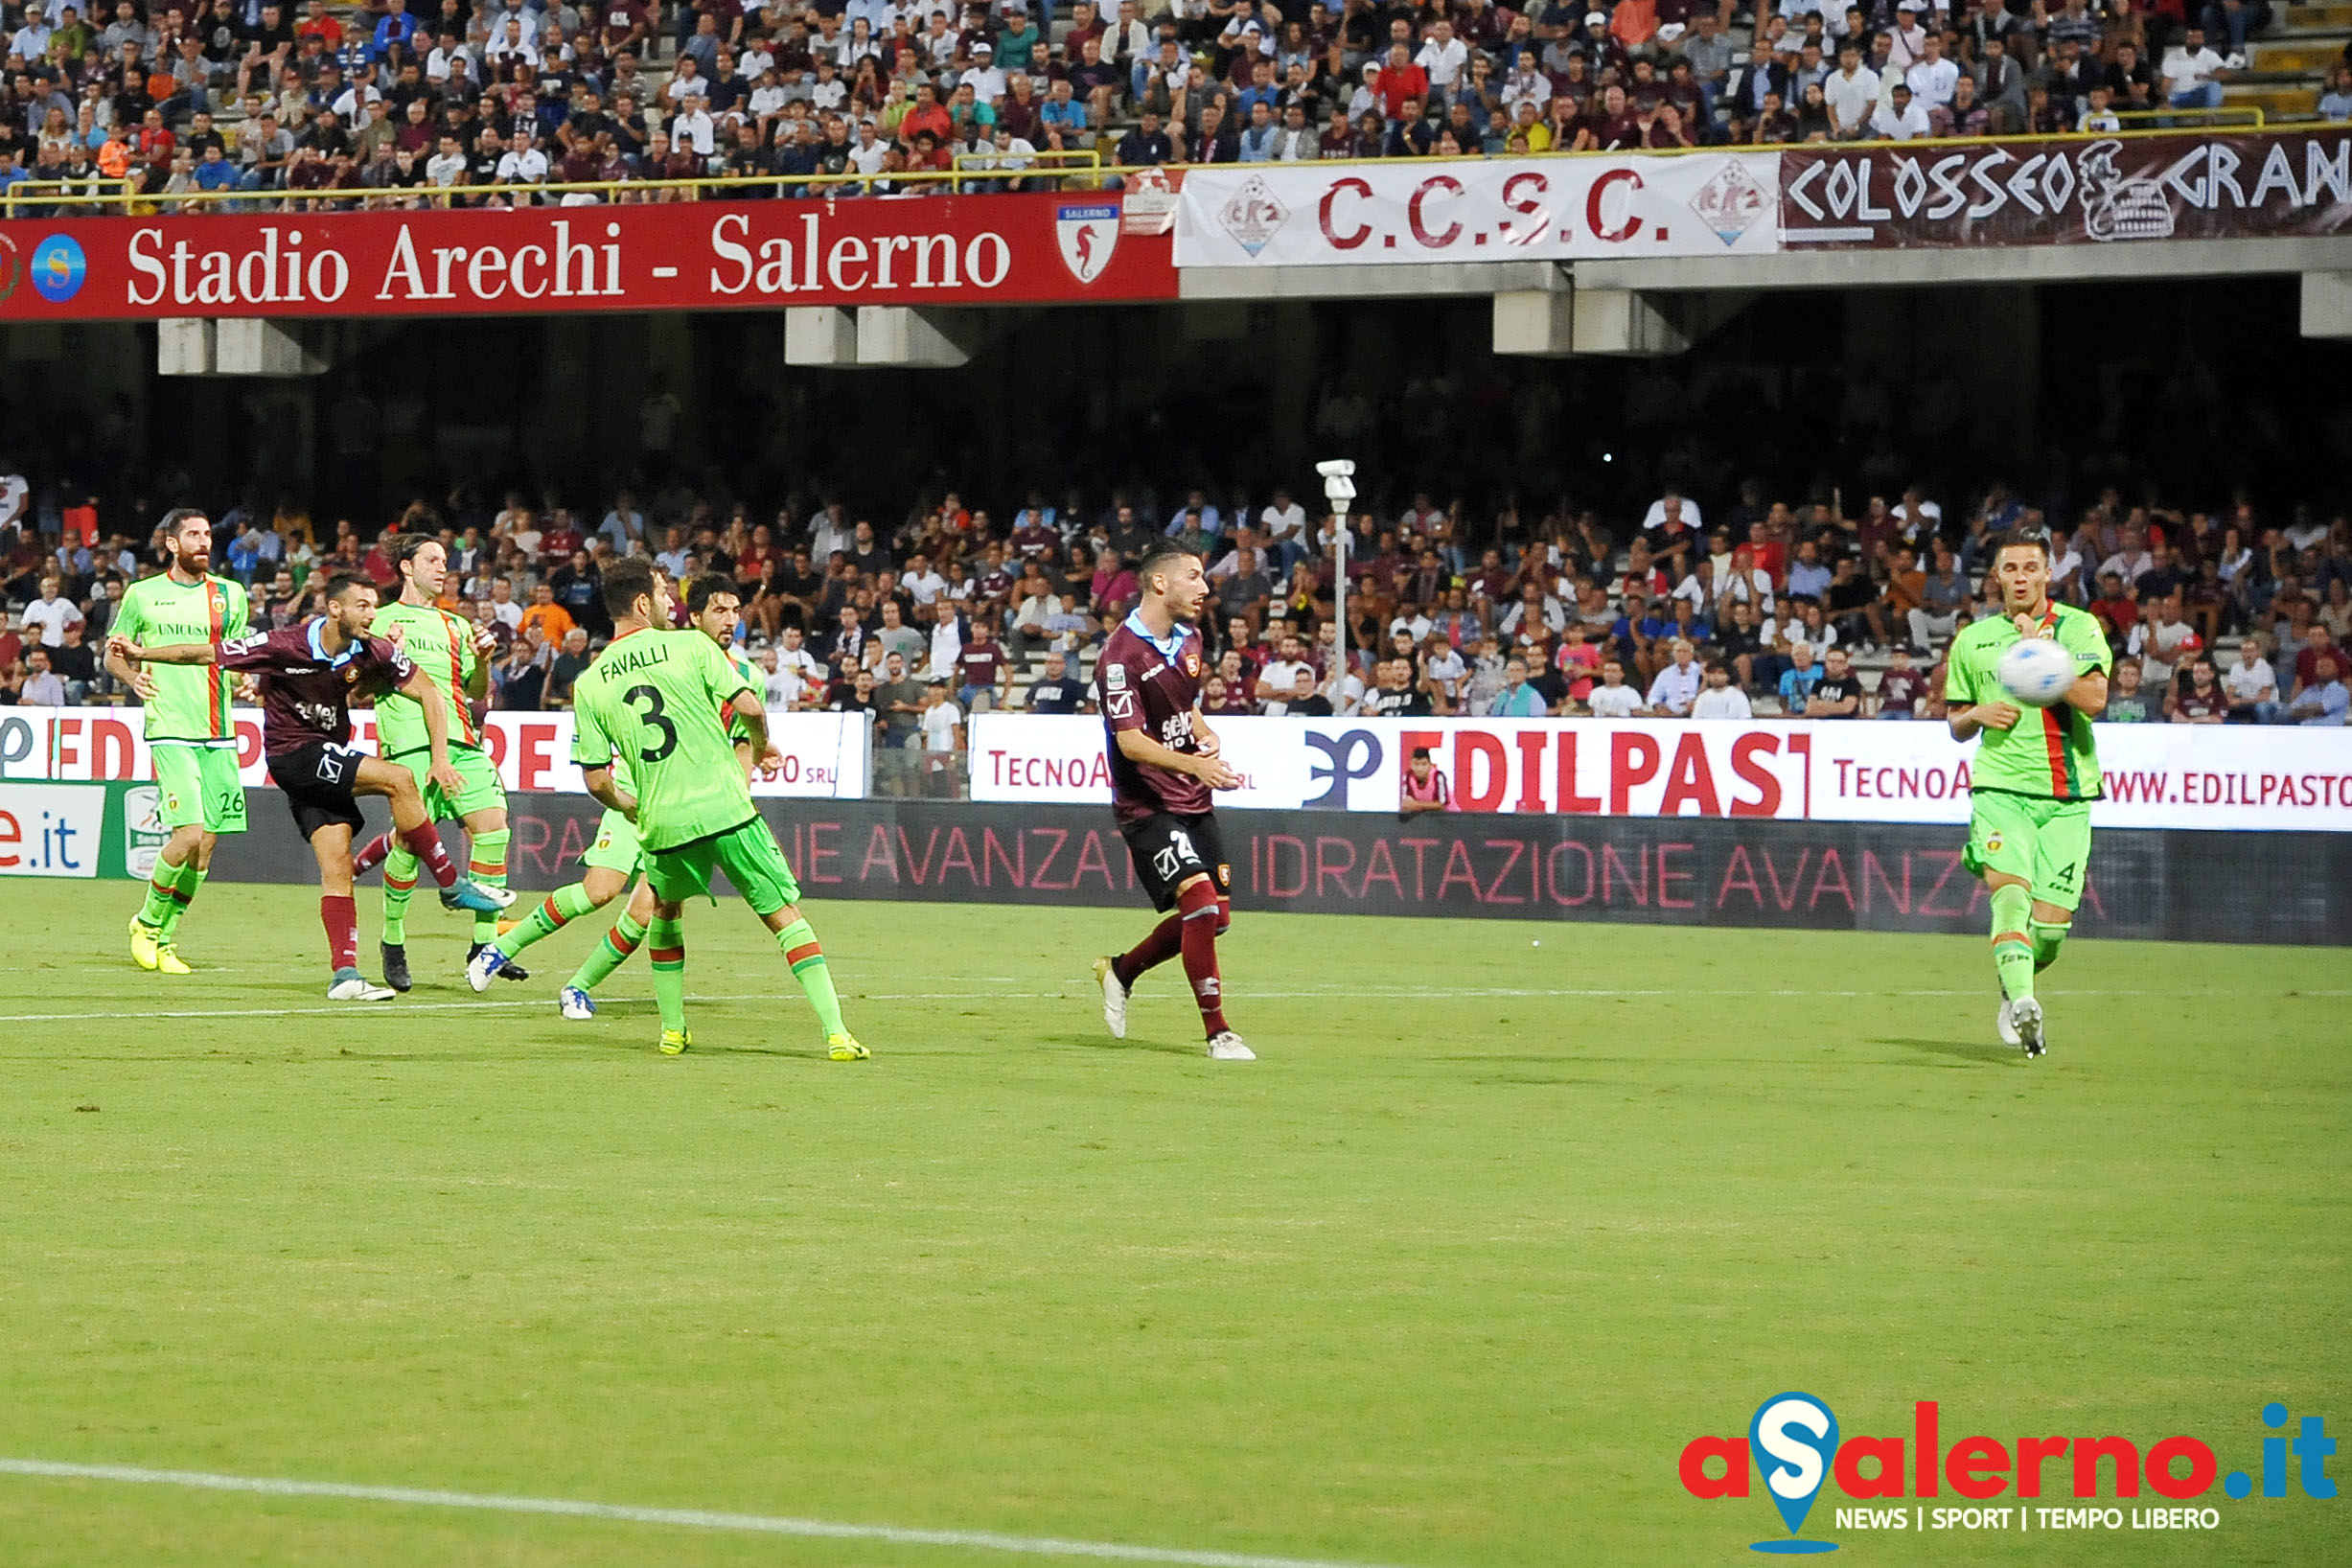 Salernitana (7)